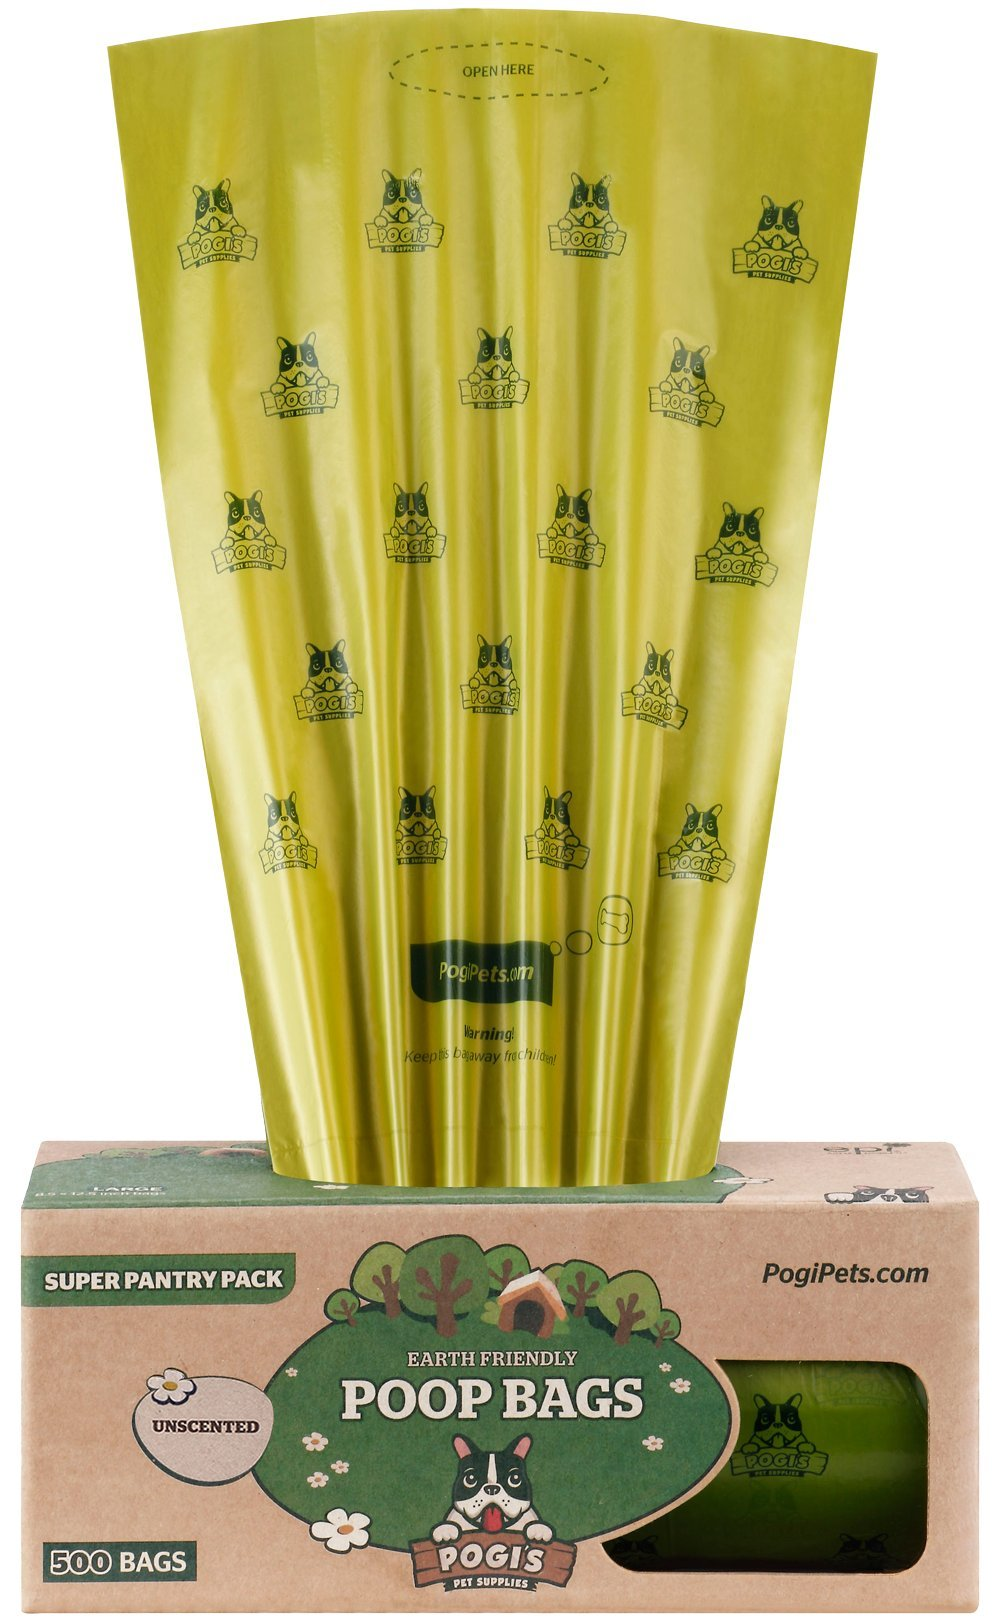 Pogi's Poop Bags - 500 Unscented Bags for Pantries - Large, Earth-Friendly, Leak-Proof Pet Waste Bags (Single Large Roll)